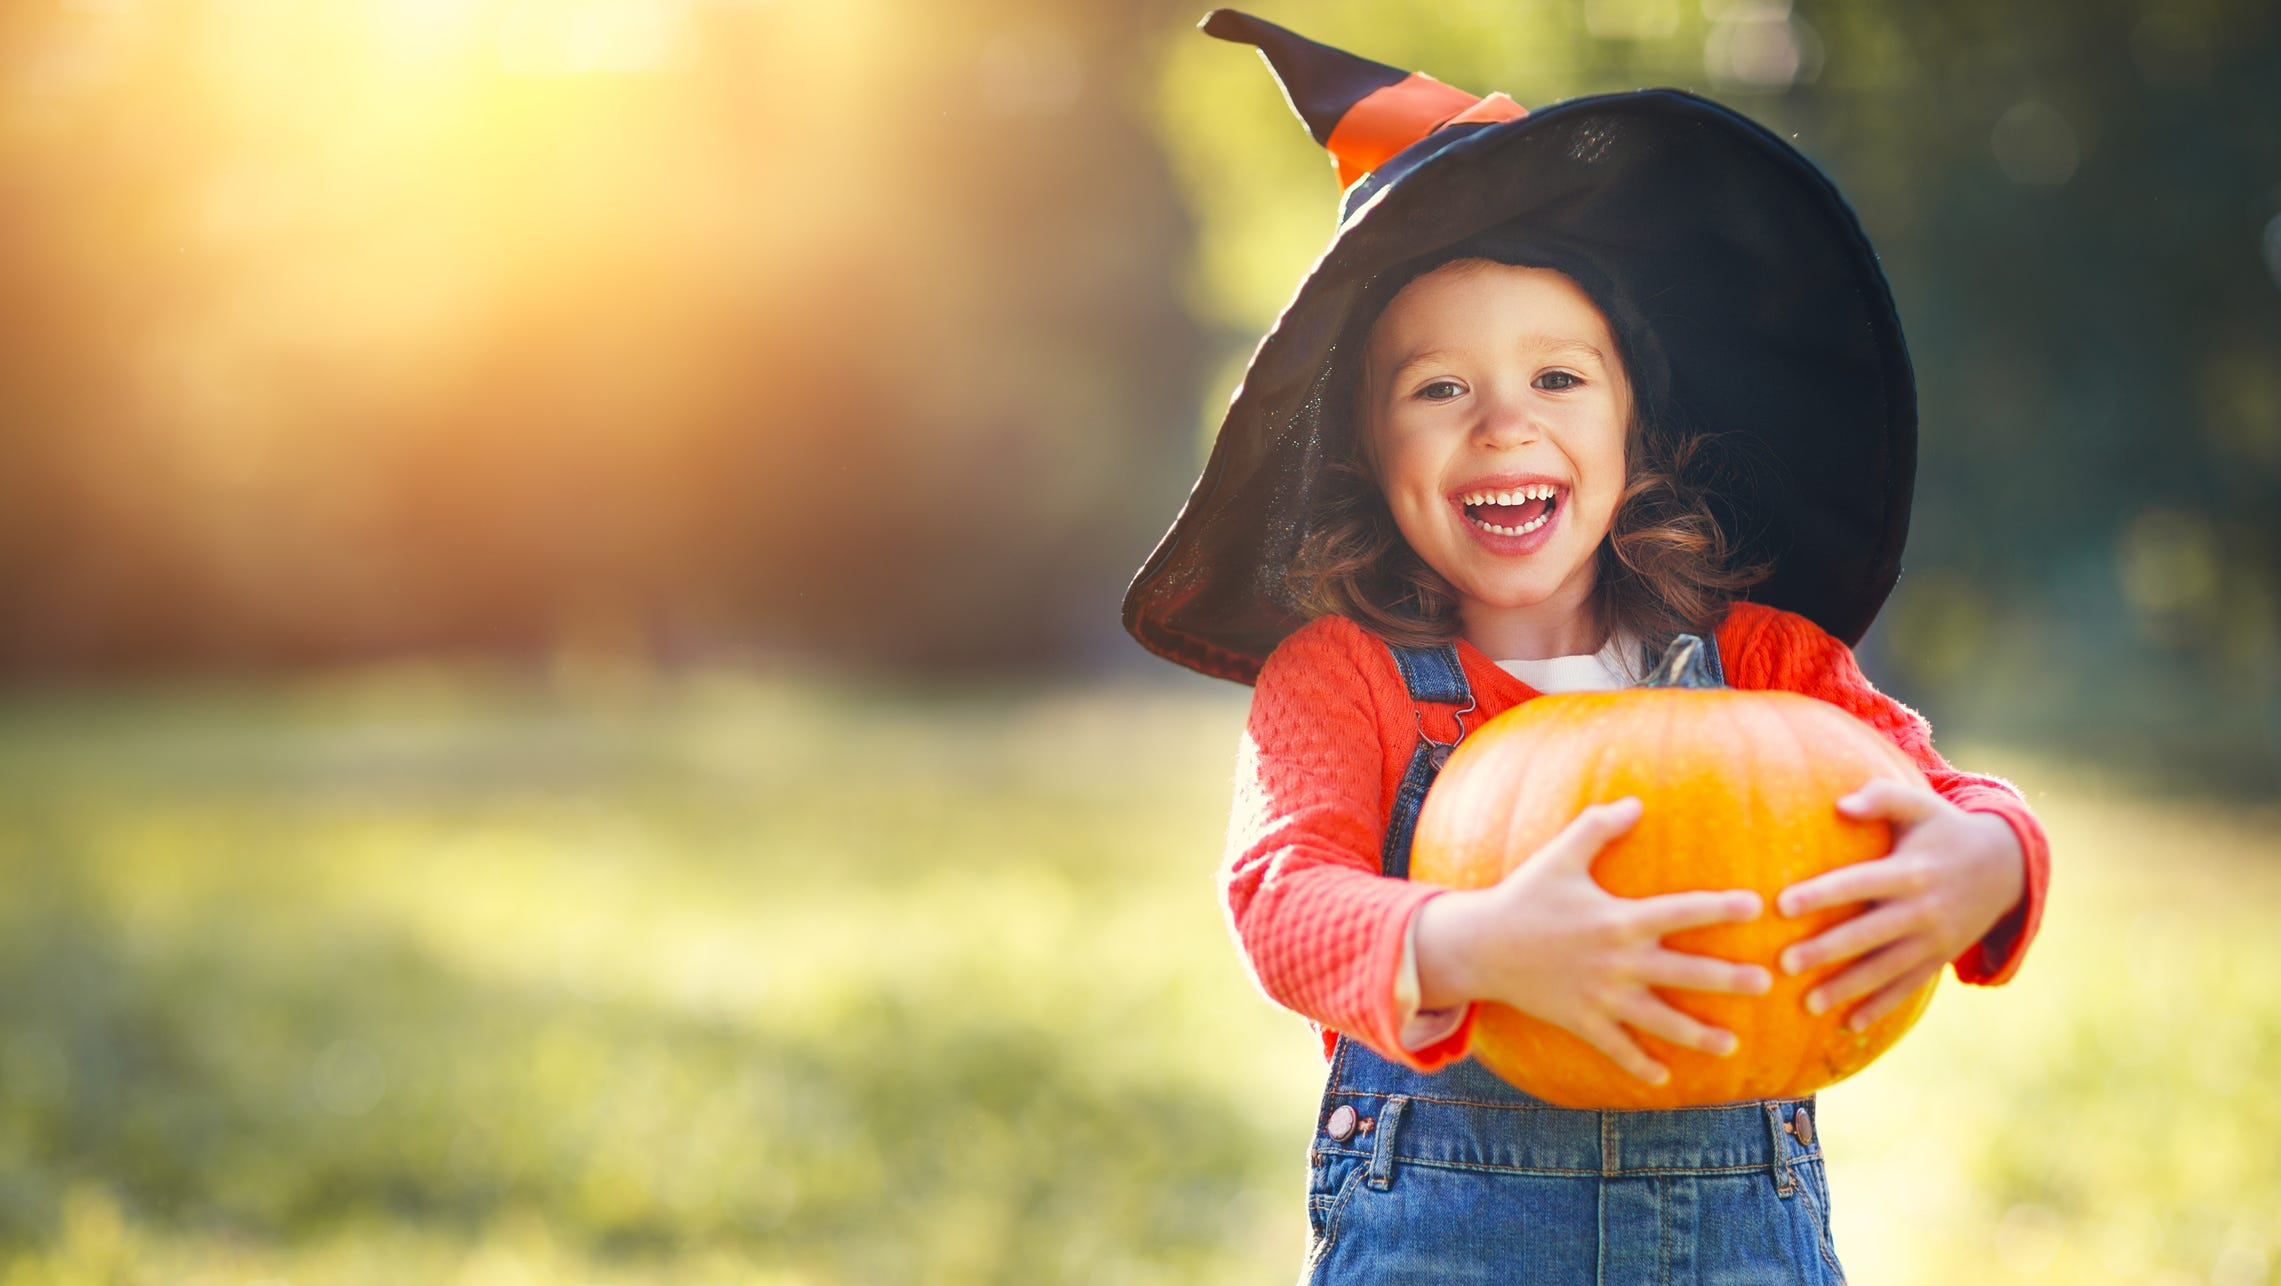 Halloween and fall events are happening throughout the month.